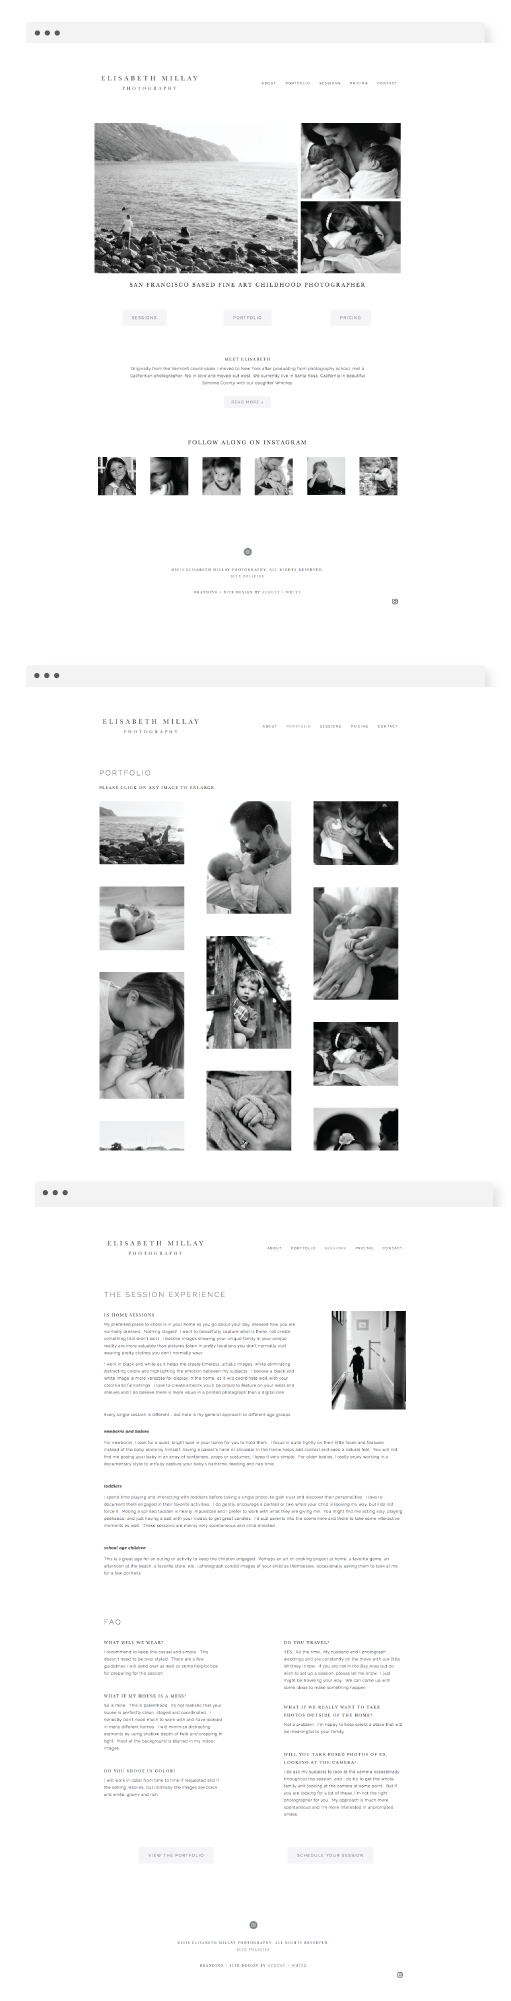 millay website.png